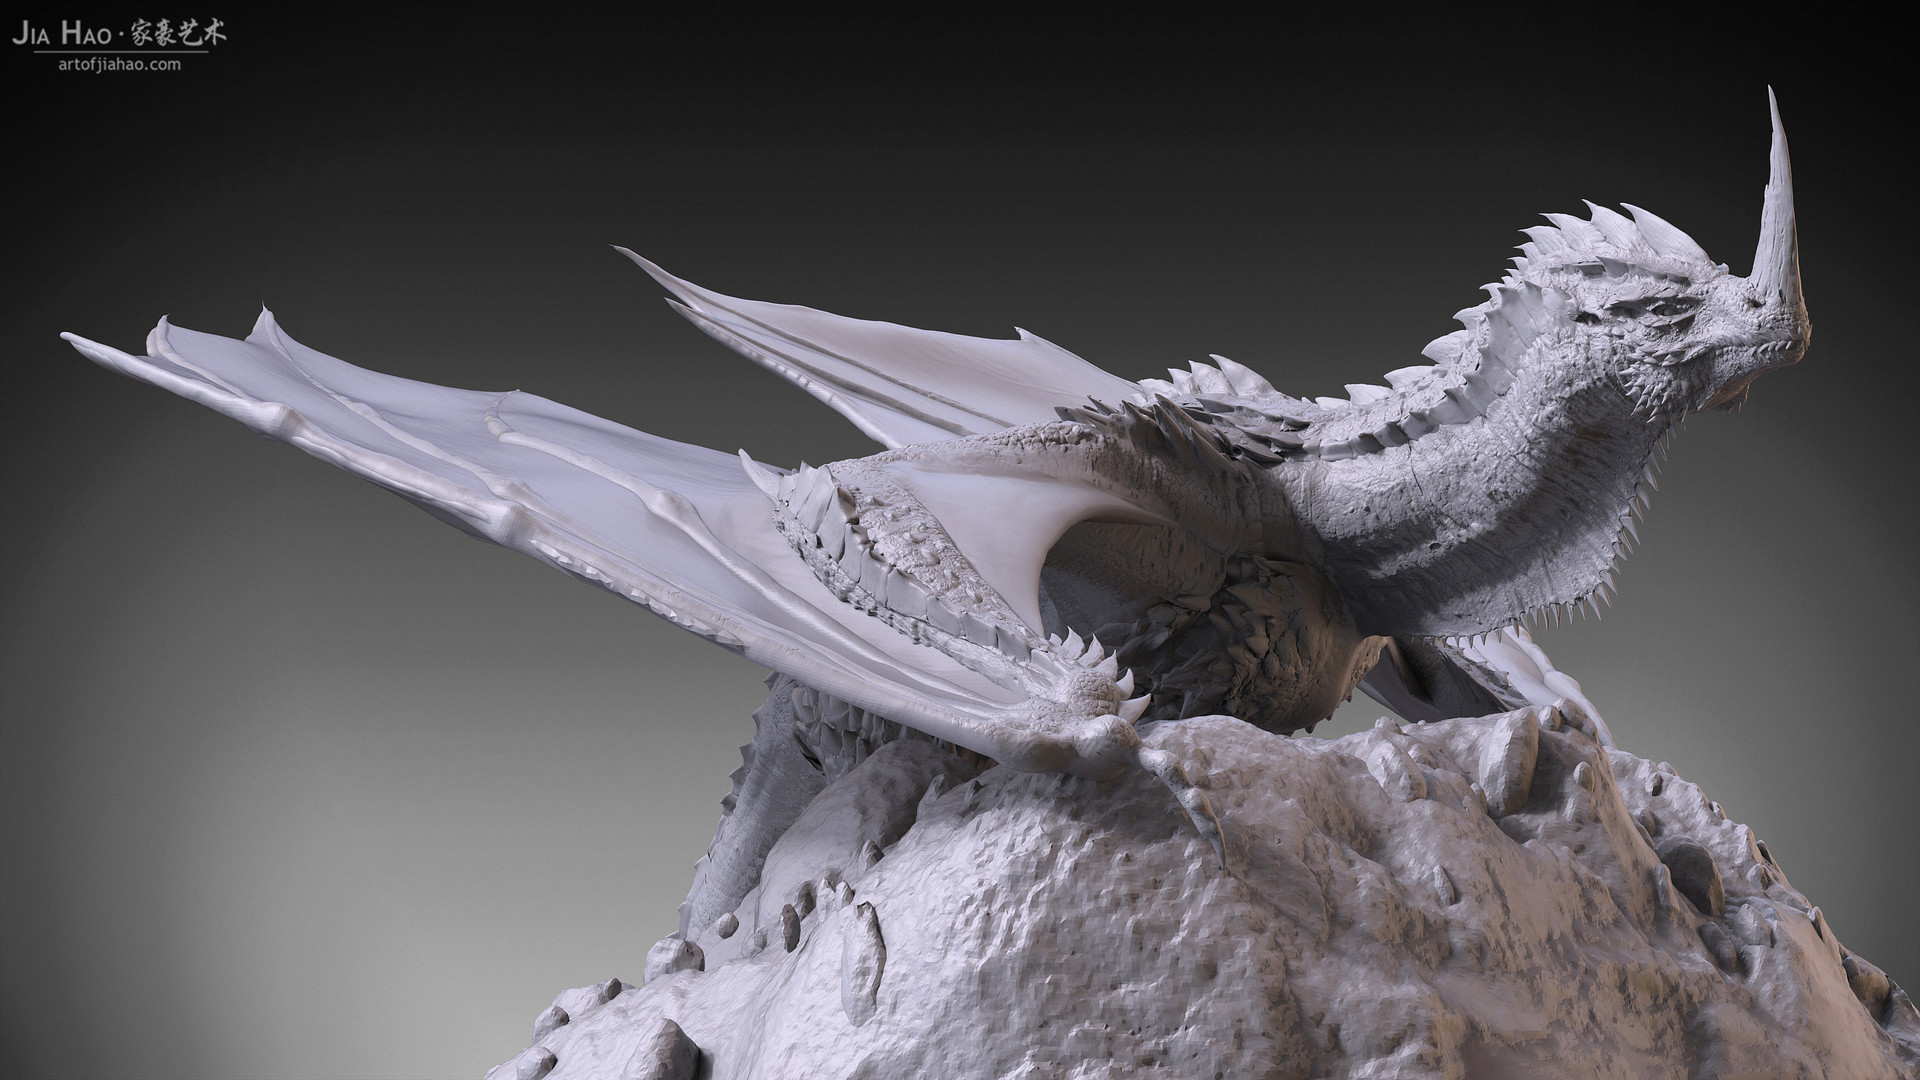 Jia hao 2017 horneddragon digitalsculpting 05